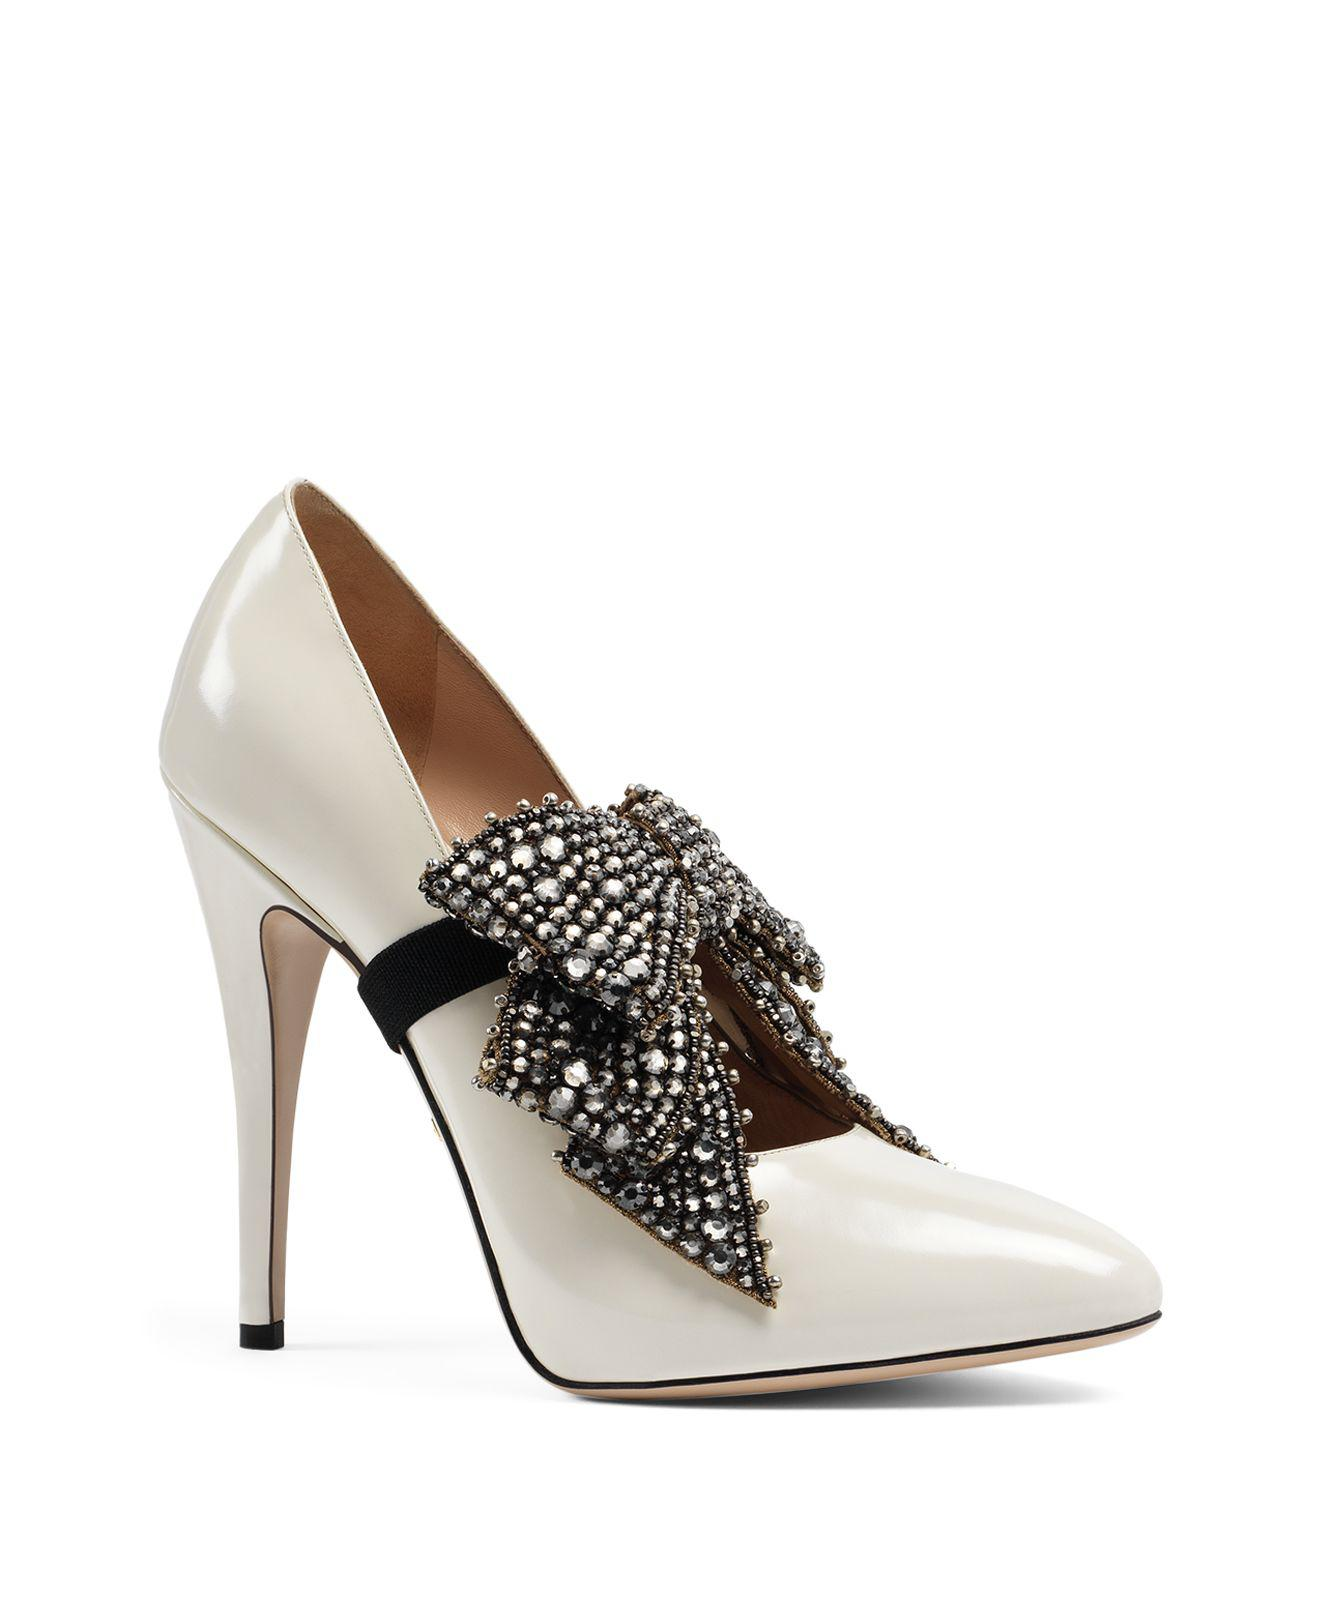 b672b52cd69 Lyst - Gucci Elaisa Embellished Bow Leather Pumps in White